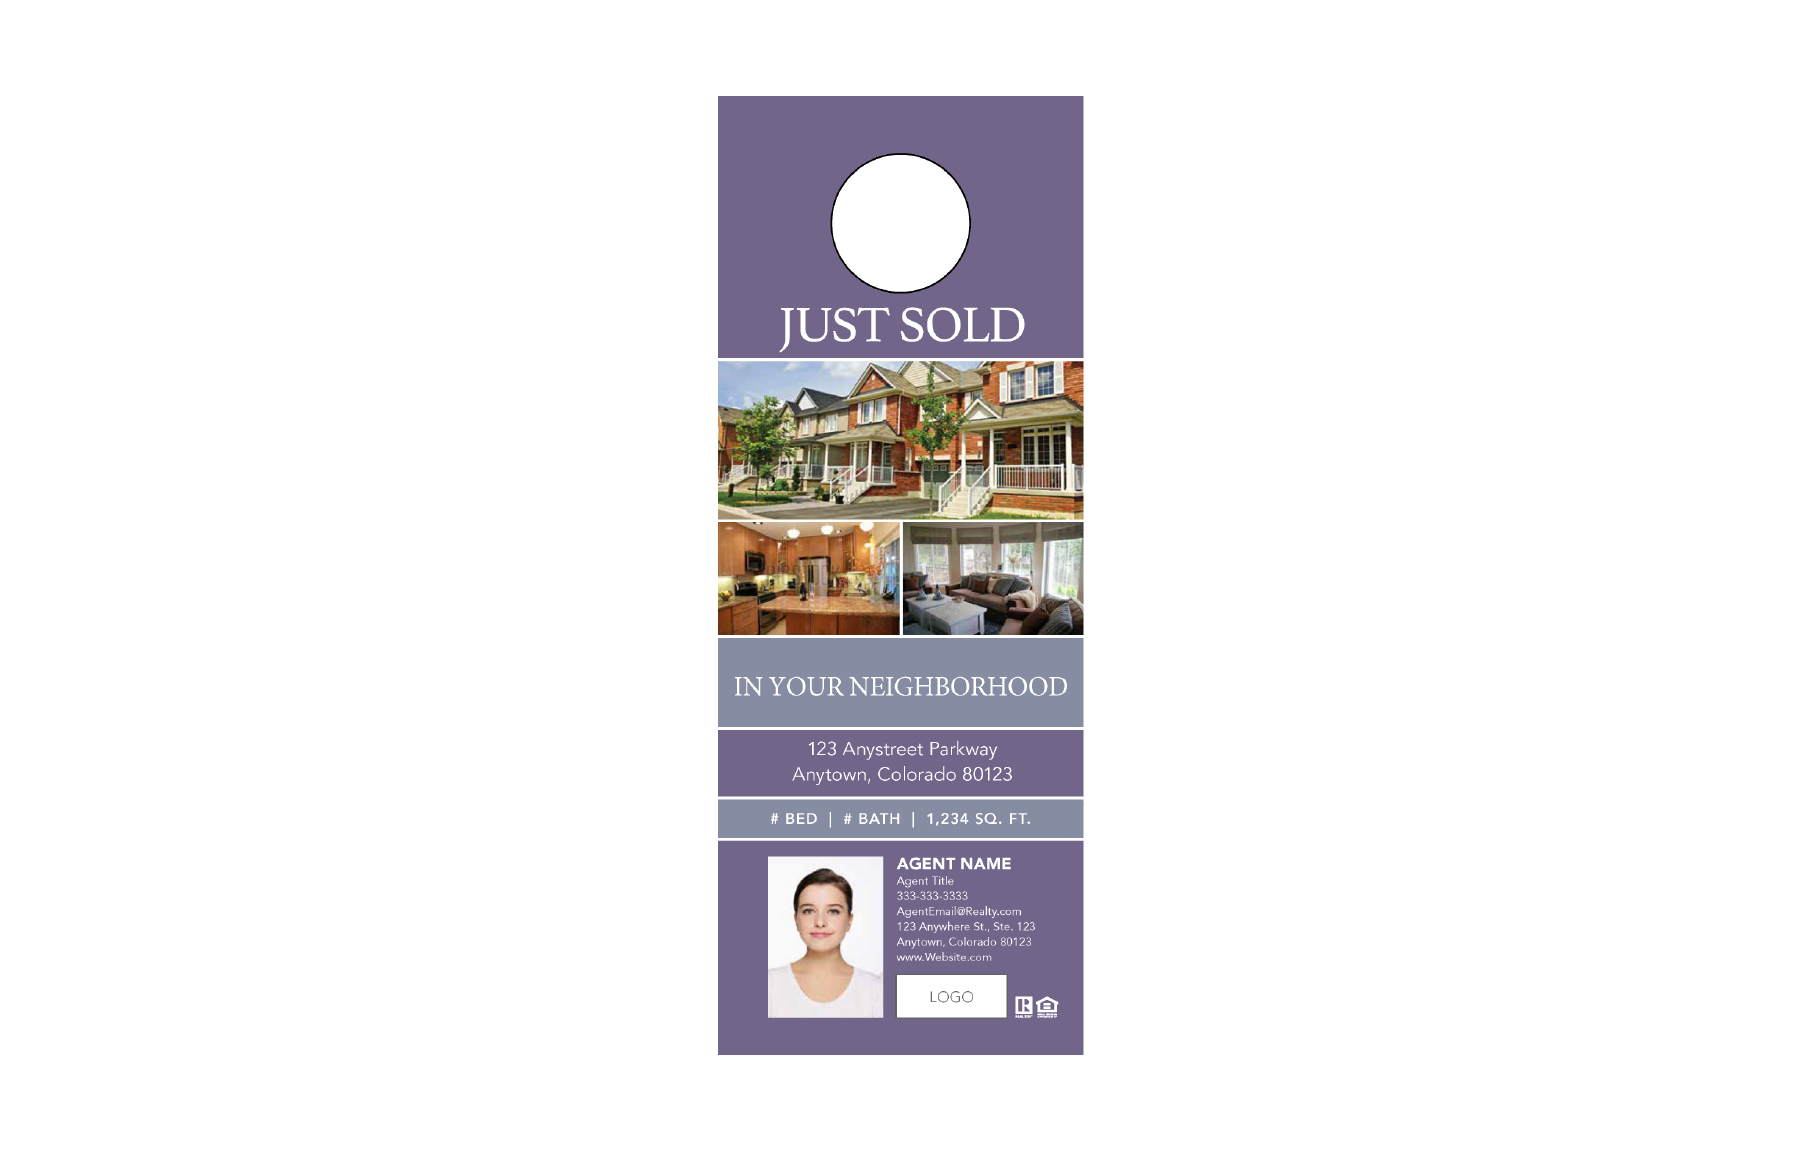 Plumb Marketing Doorhanger 2 One Sided Purple - Just Sold - 1712